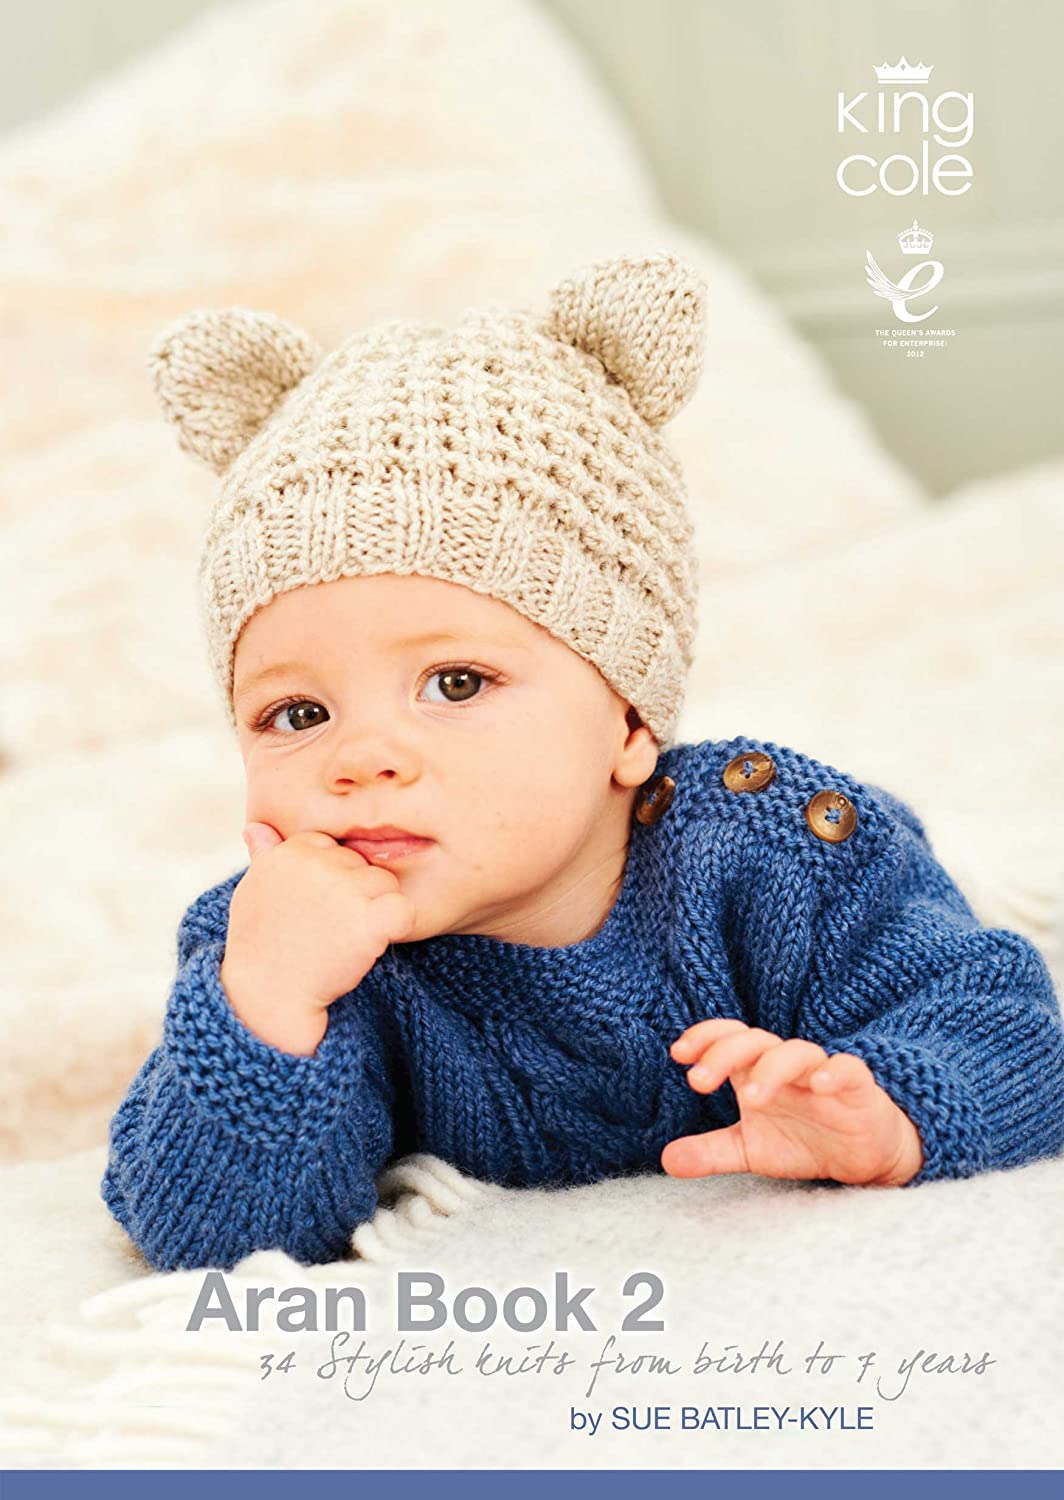 King Cole Knitting Pattern Baby Book 6 : 29 Stylish Knits From Birth ...